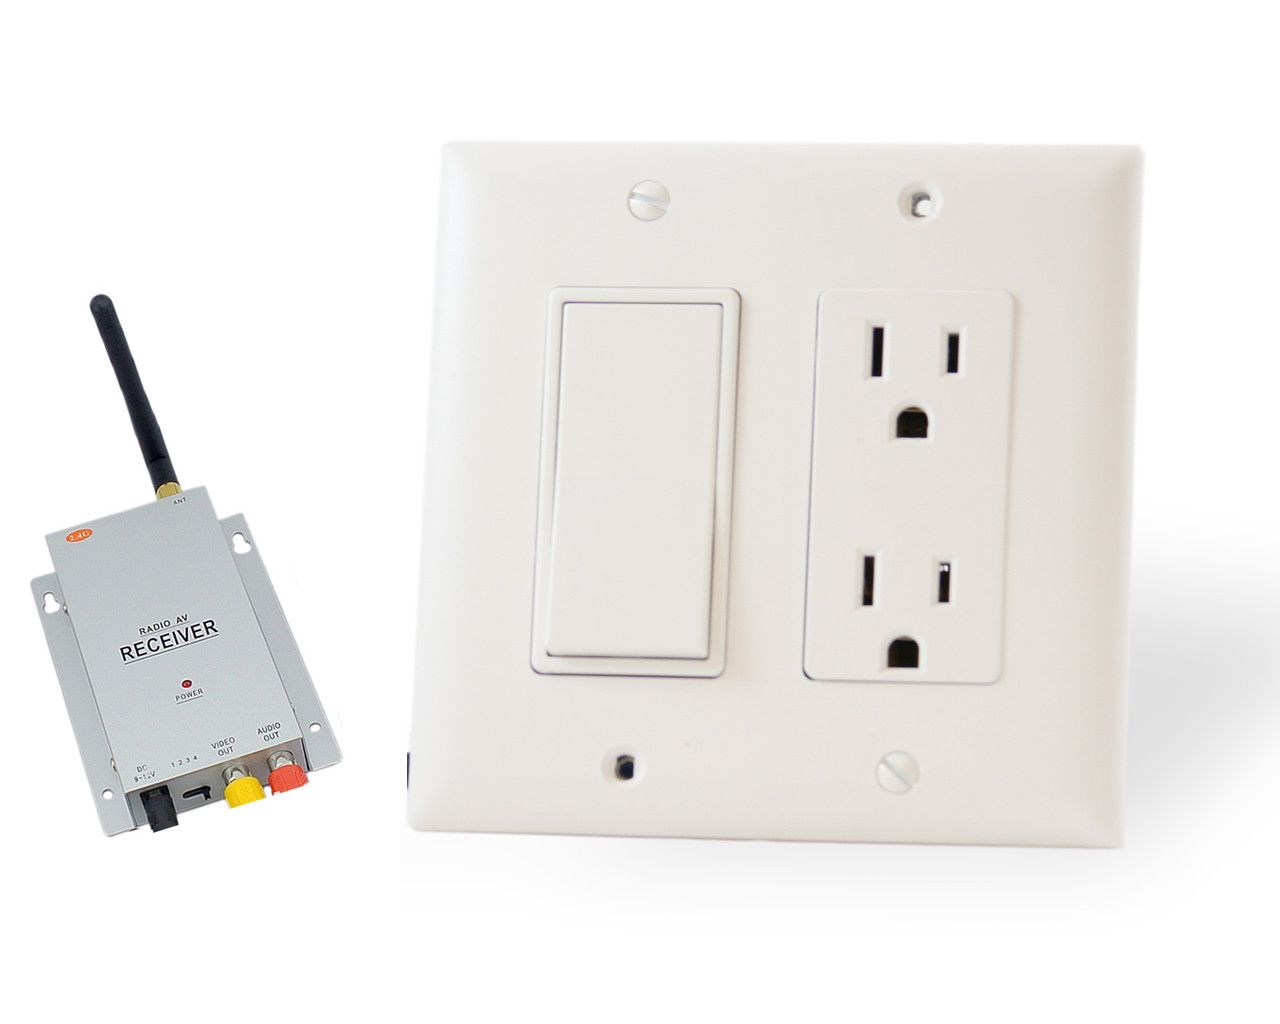 Wall Outlet/Switch Wireless Monitoring Hidden Spy Camera